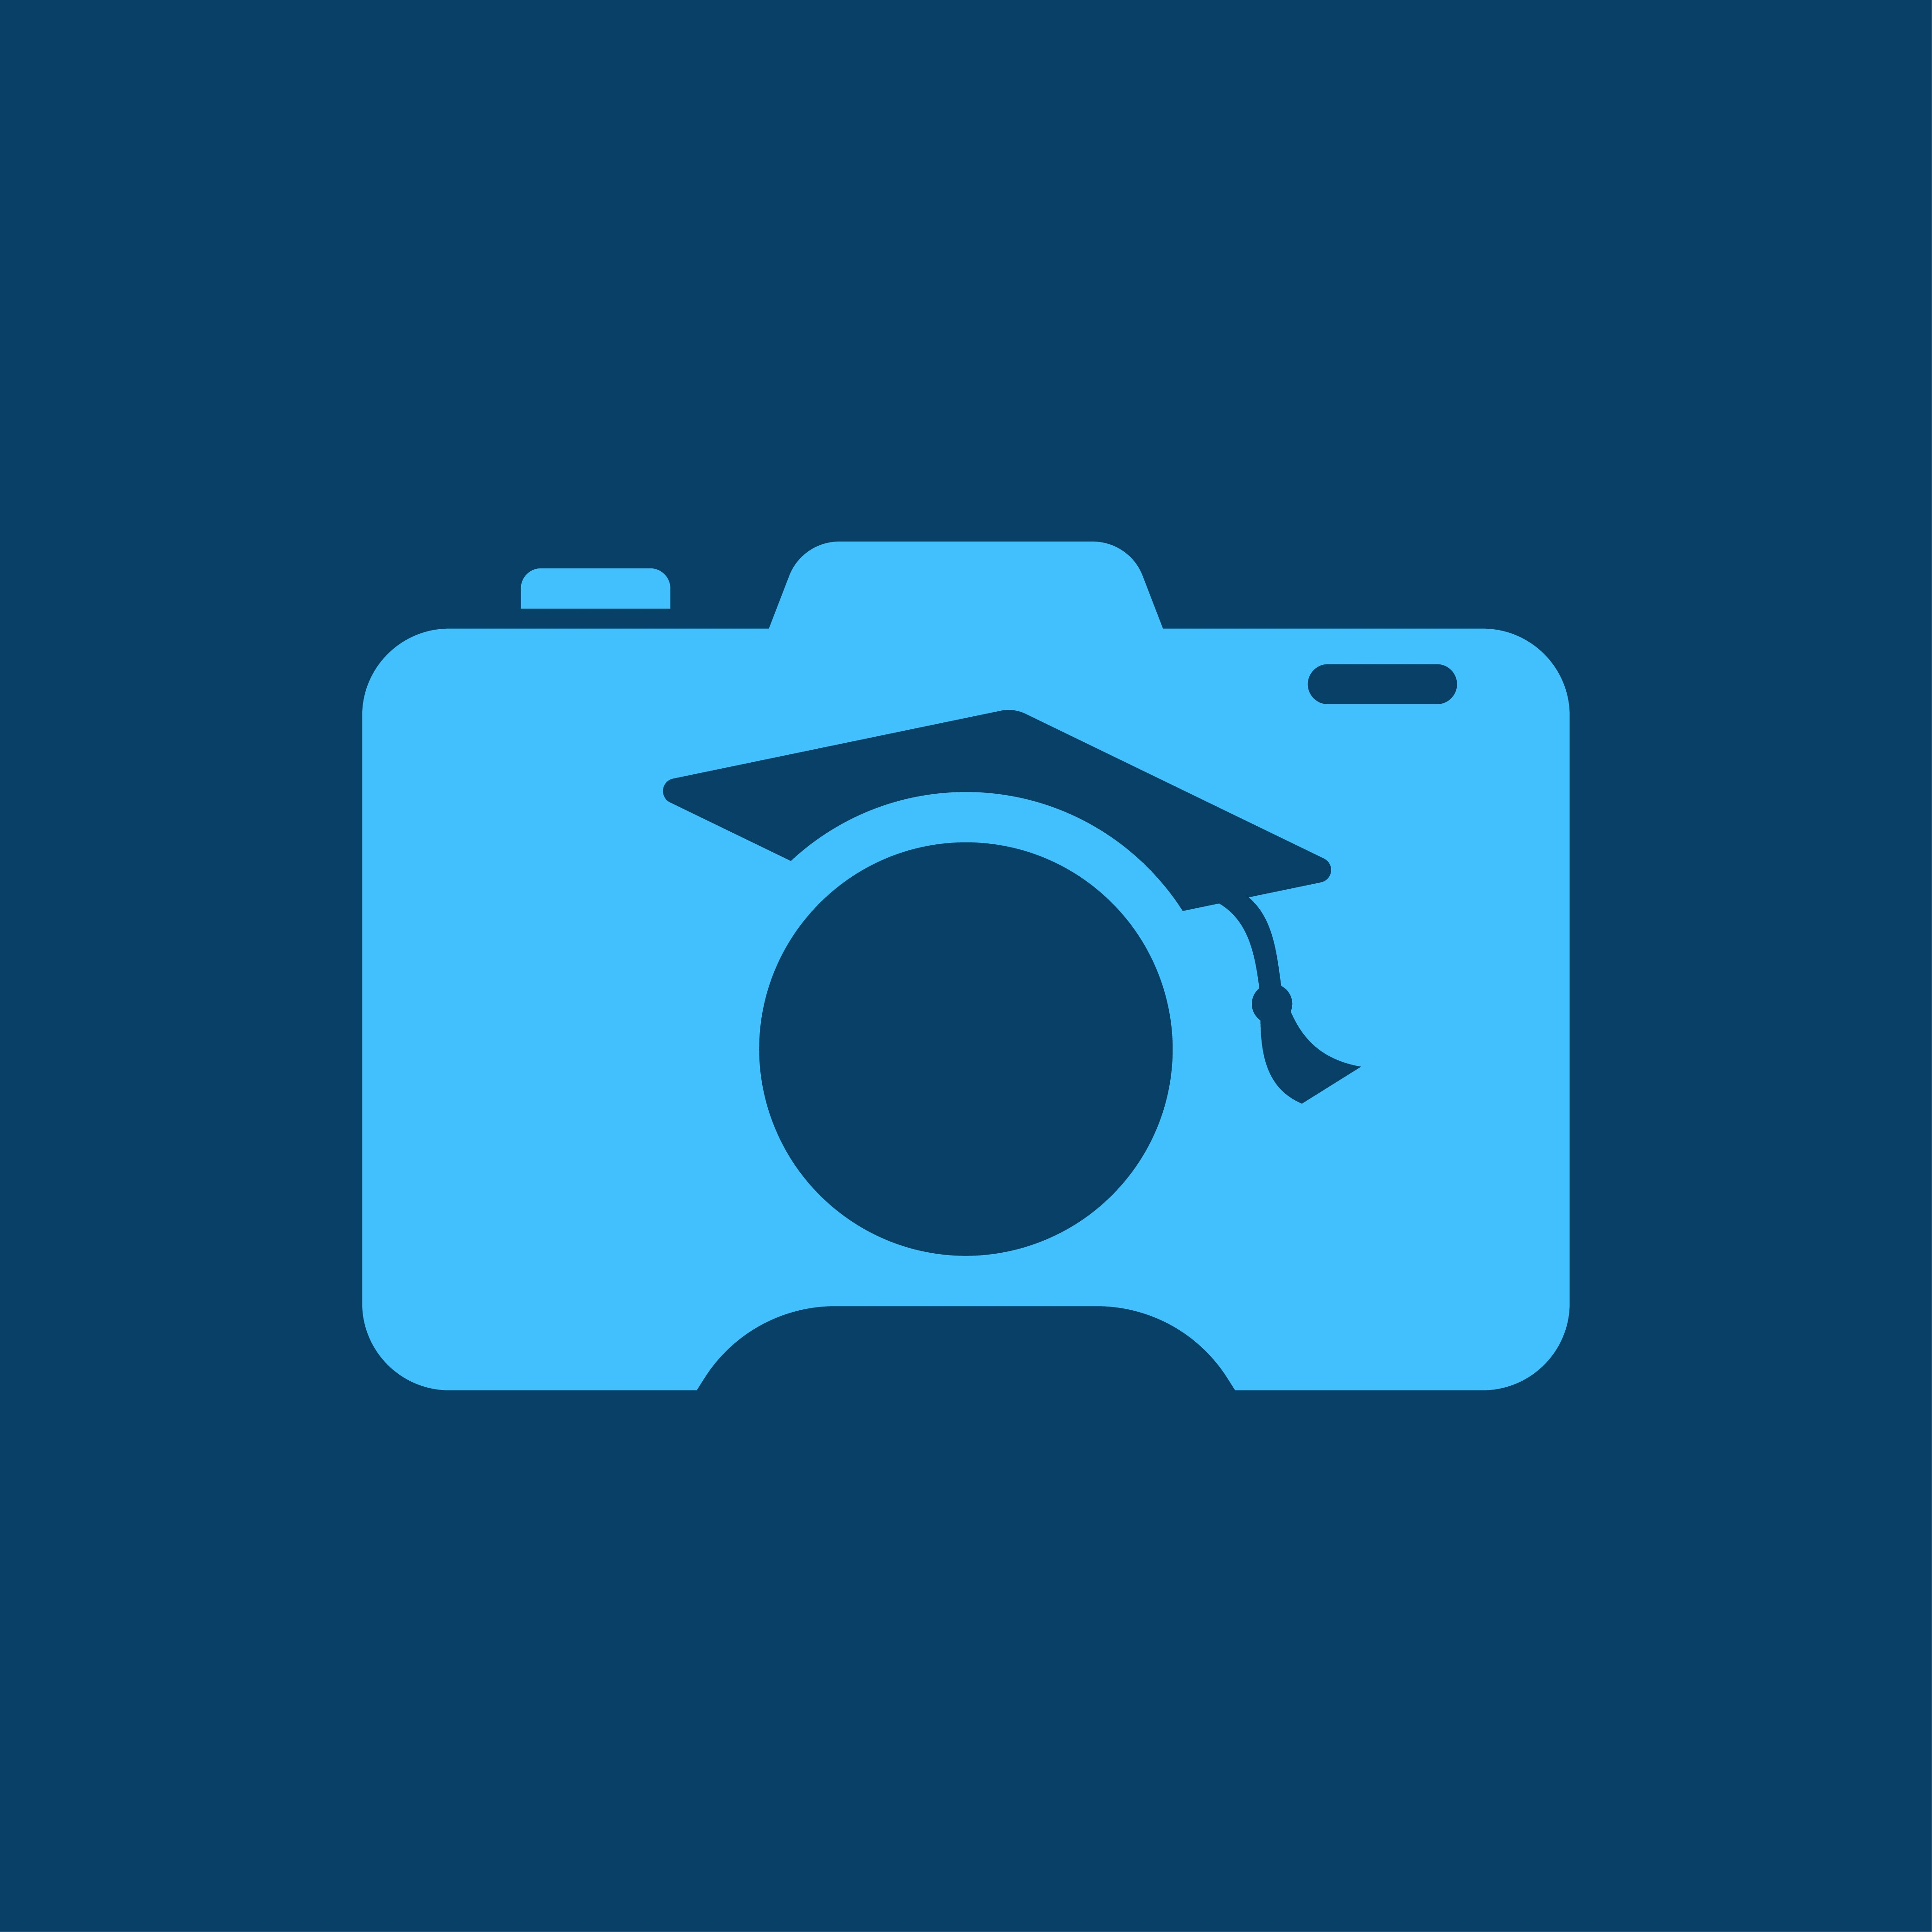 CLEAN and FUN logo needed for School Photography Company